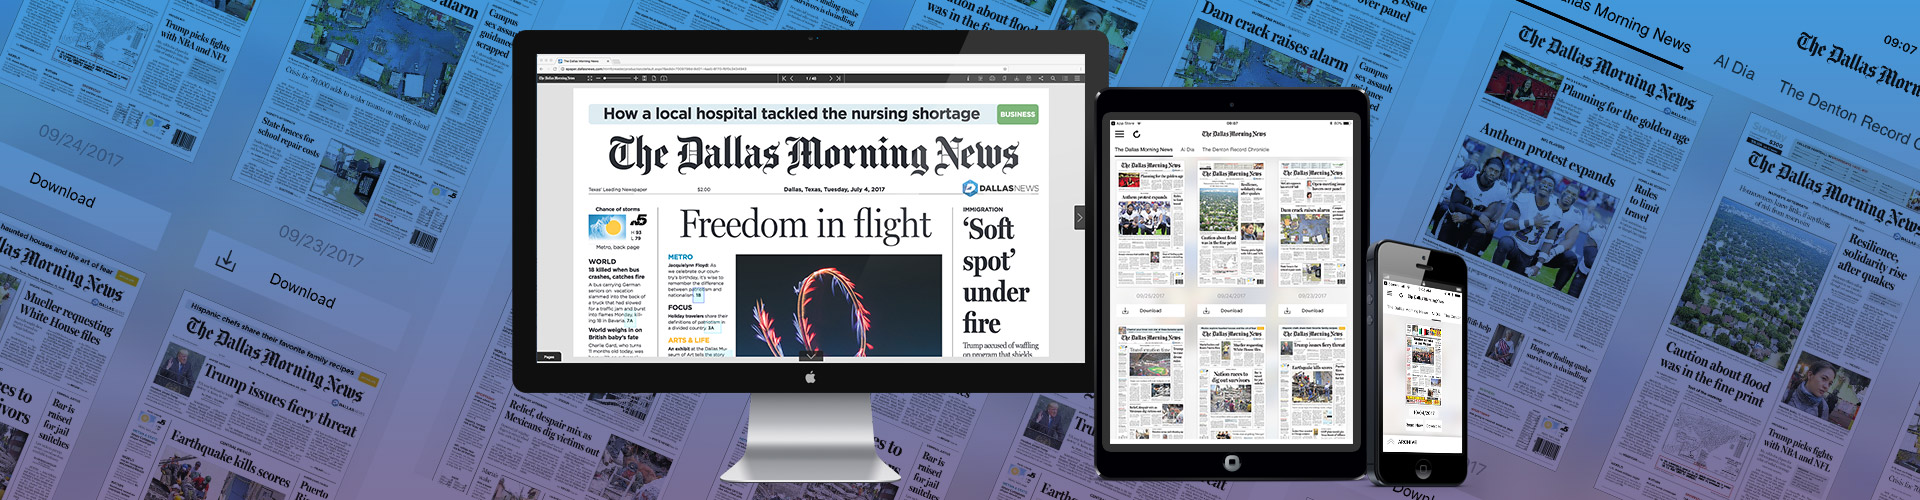 Image of The Dallas Morning News launch new app and HTML5 desktop solution